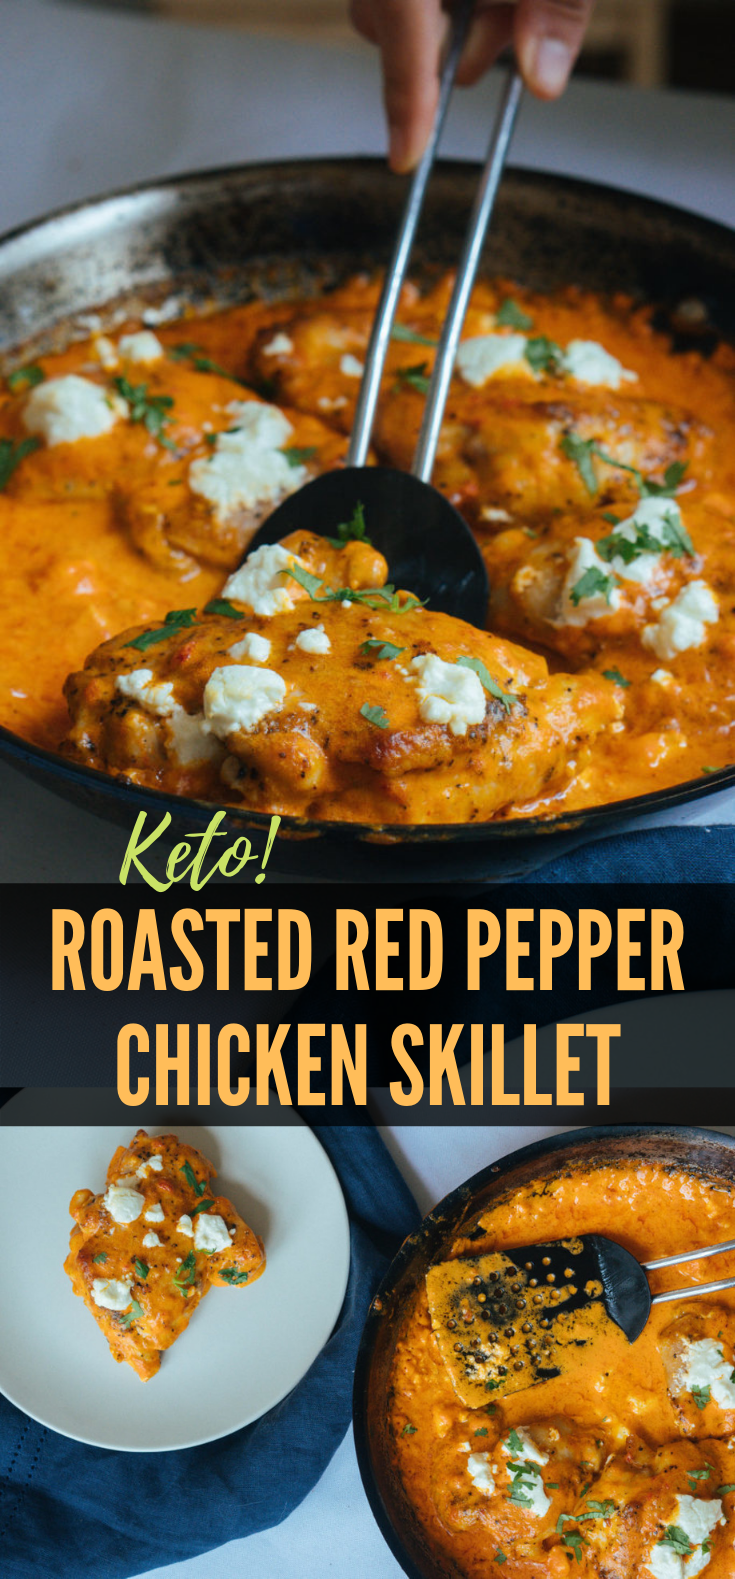 Keto Chicken Thighs | Roasted Red Pepper Sauce! #OnSkillet #Ketogenic